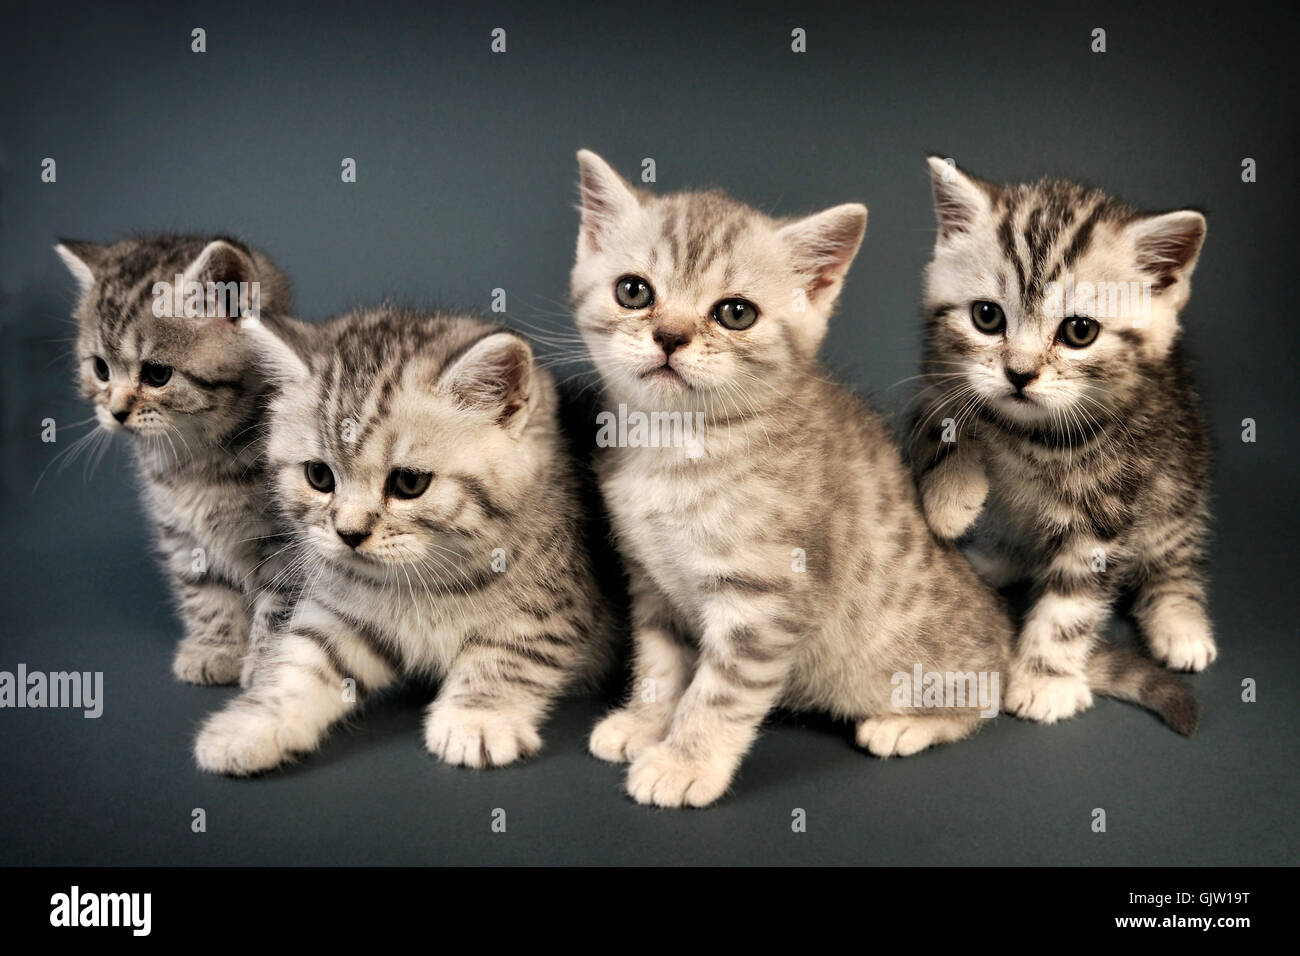 british shorthair kittens adorable animal baby beautiful cat charming companion cuddly cute domestic feline friend - Stock Image